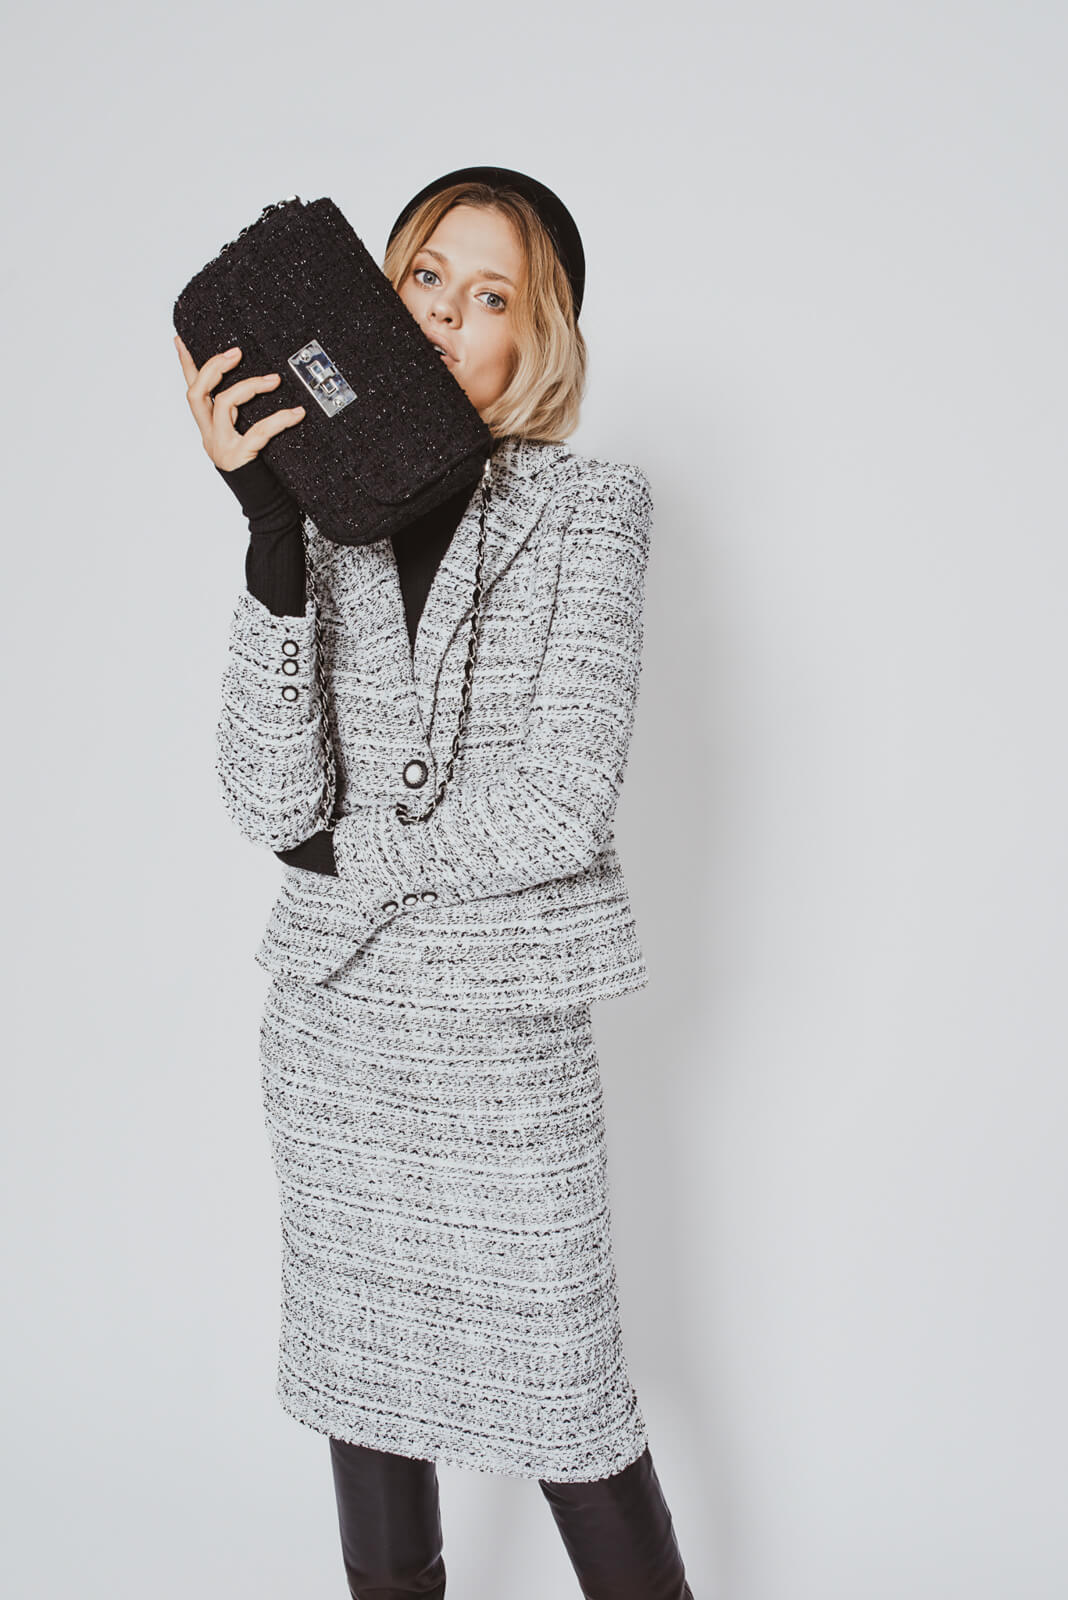 Black and white tweed skirt suit MiaGiacca